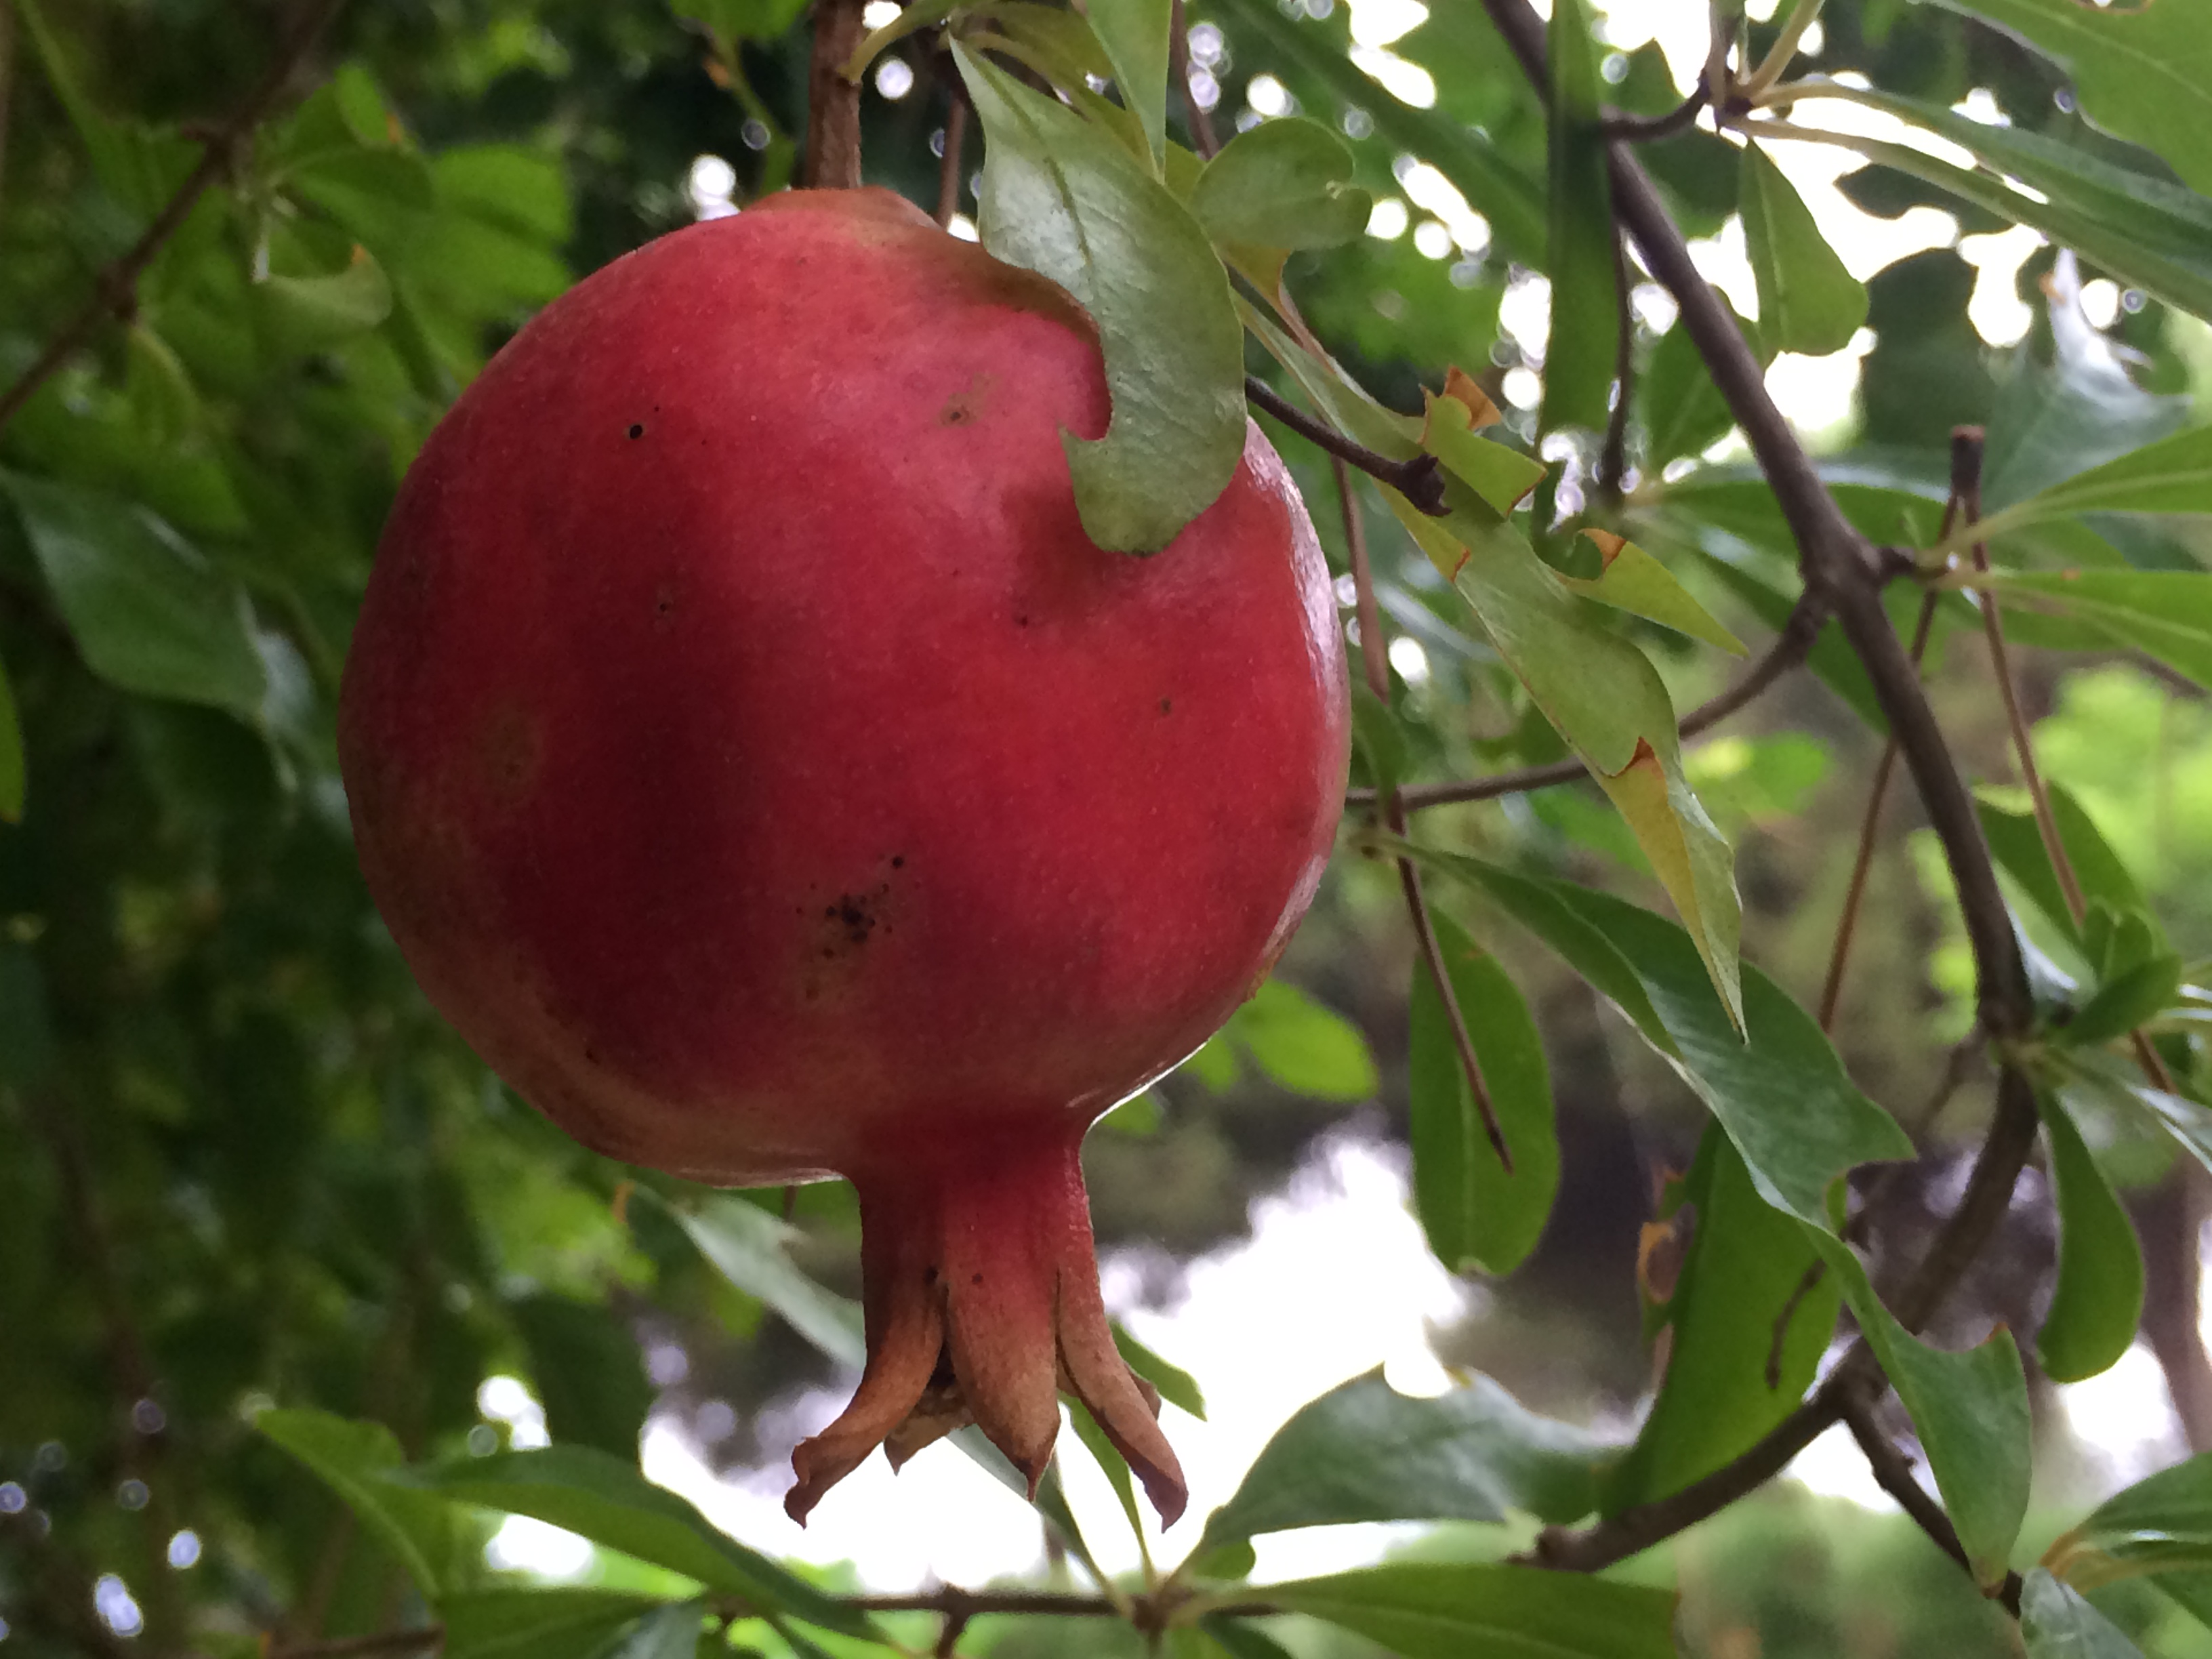 Pomegranate growing in the garden